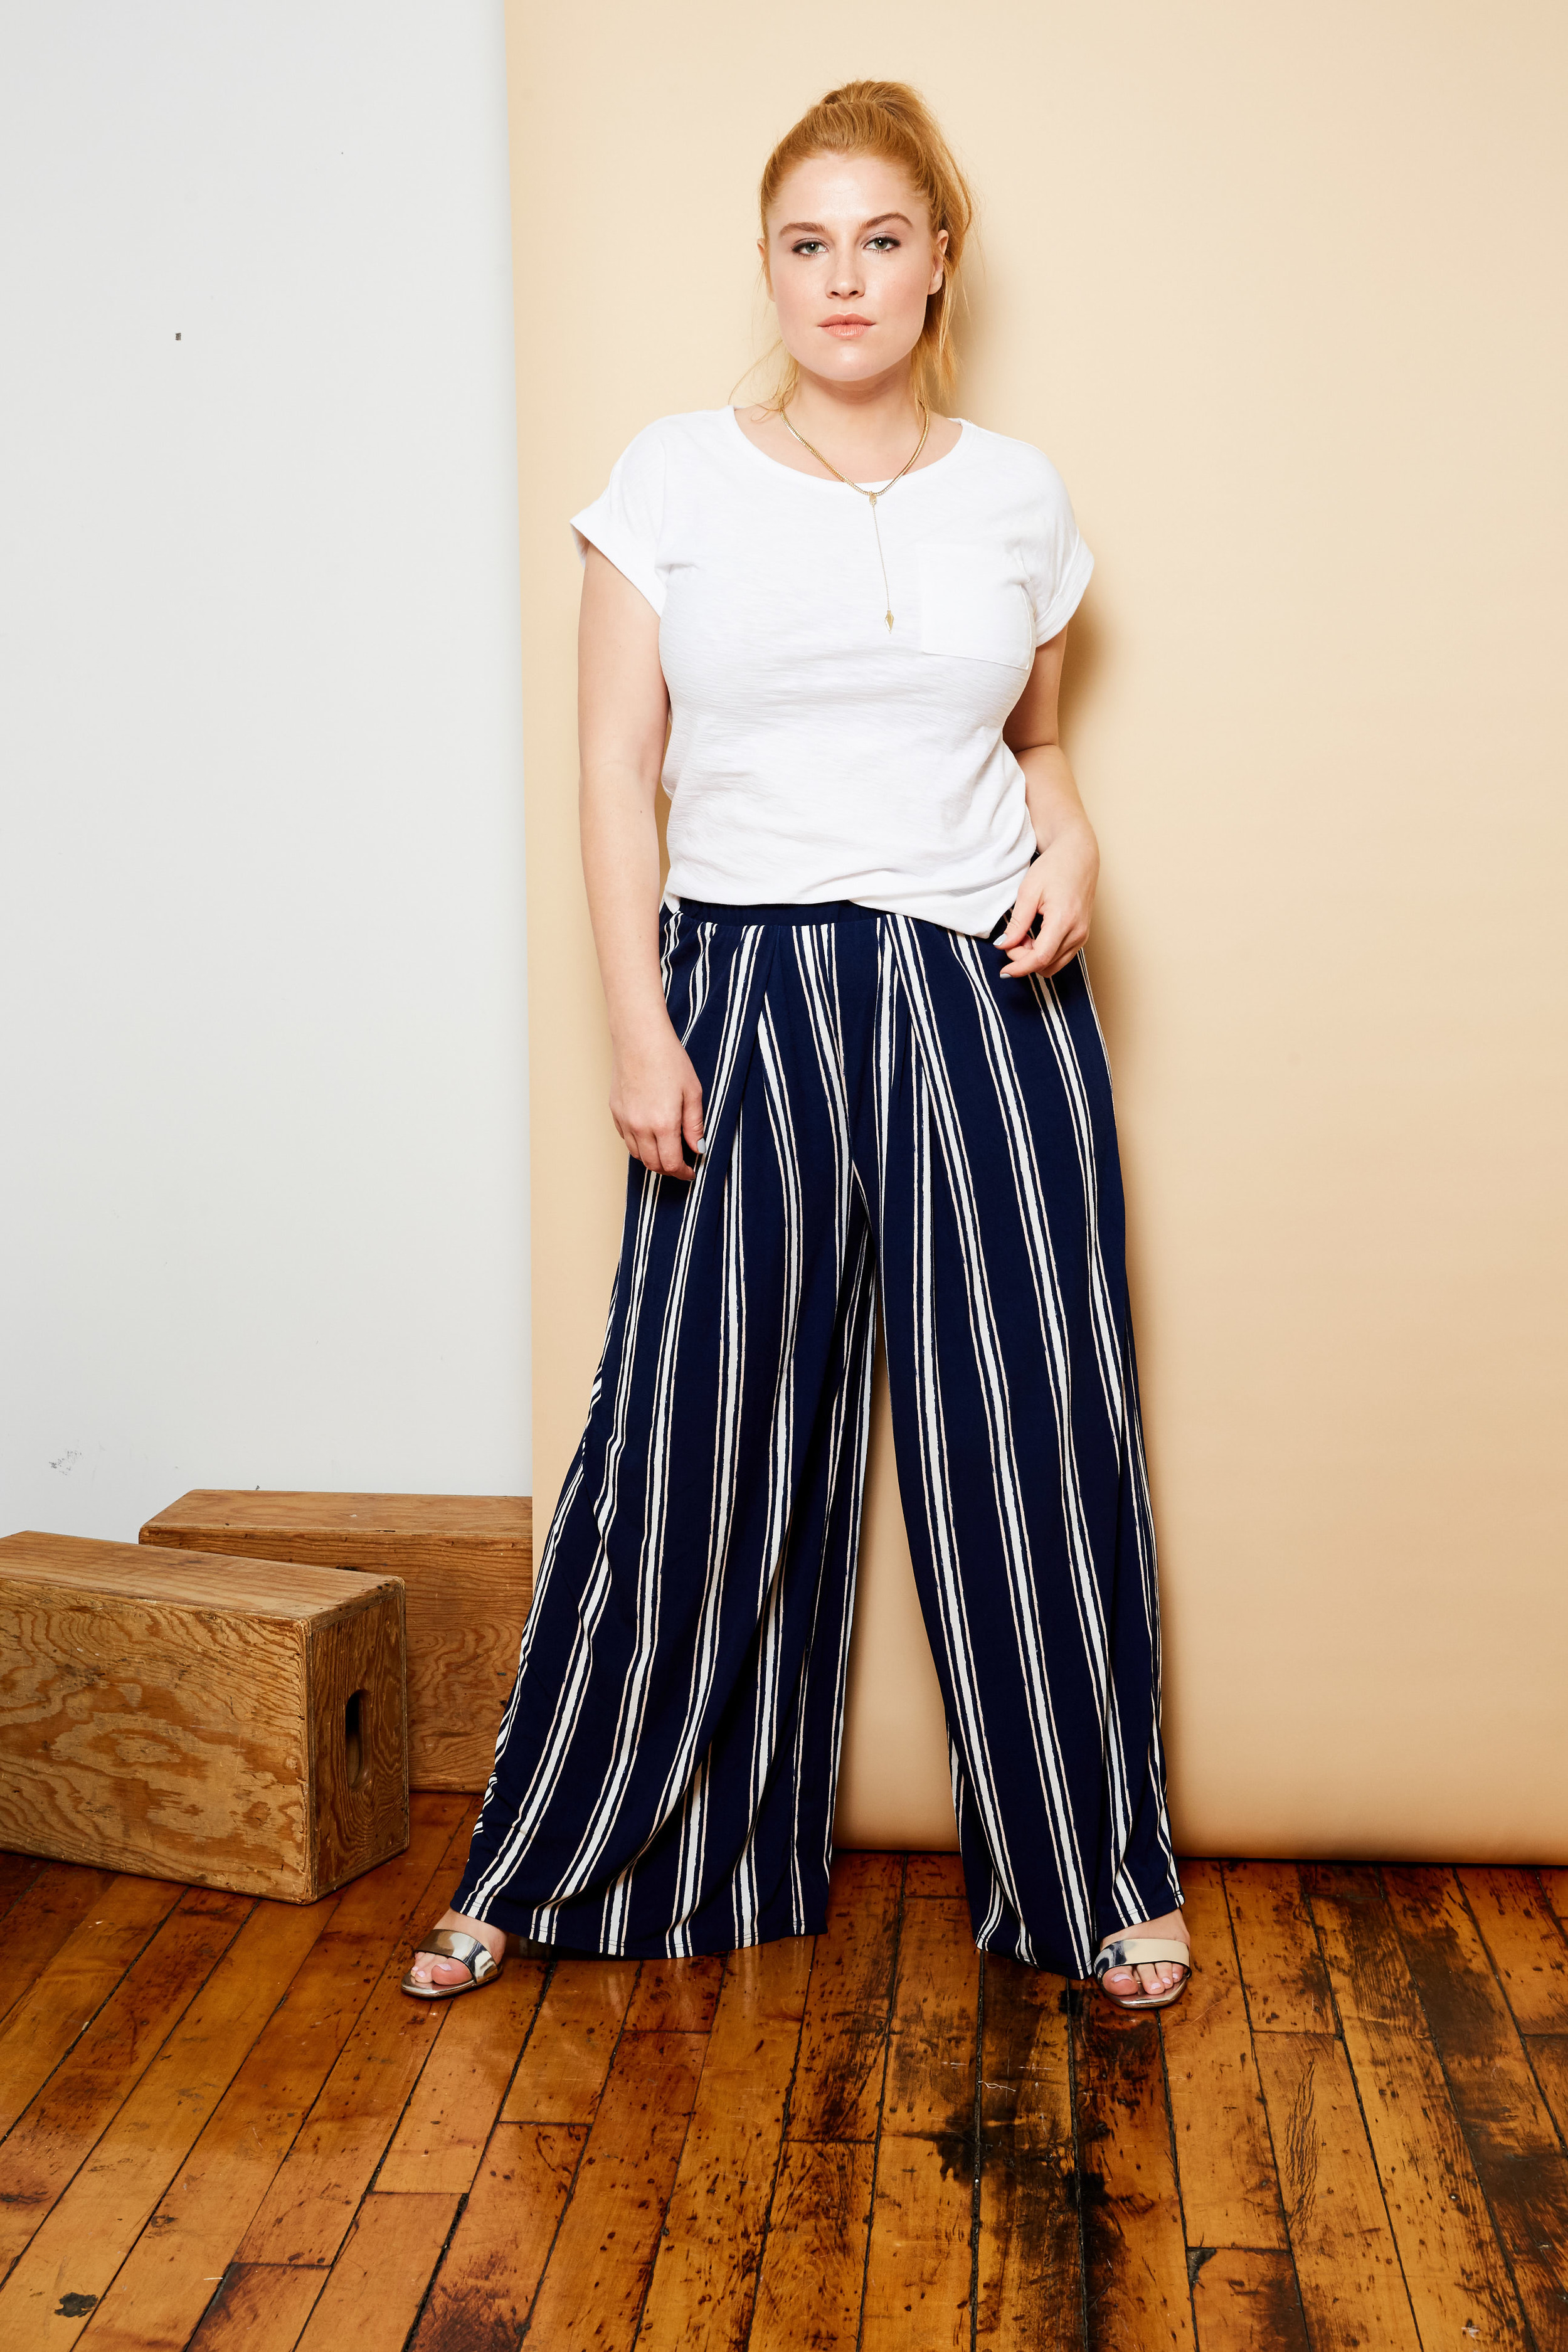 Mossimo tee, $12.   Bar III pants available at Macy's, $59.50.   Jules Smith necklace, $80.   Dune London sandals, $125.